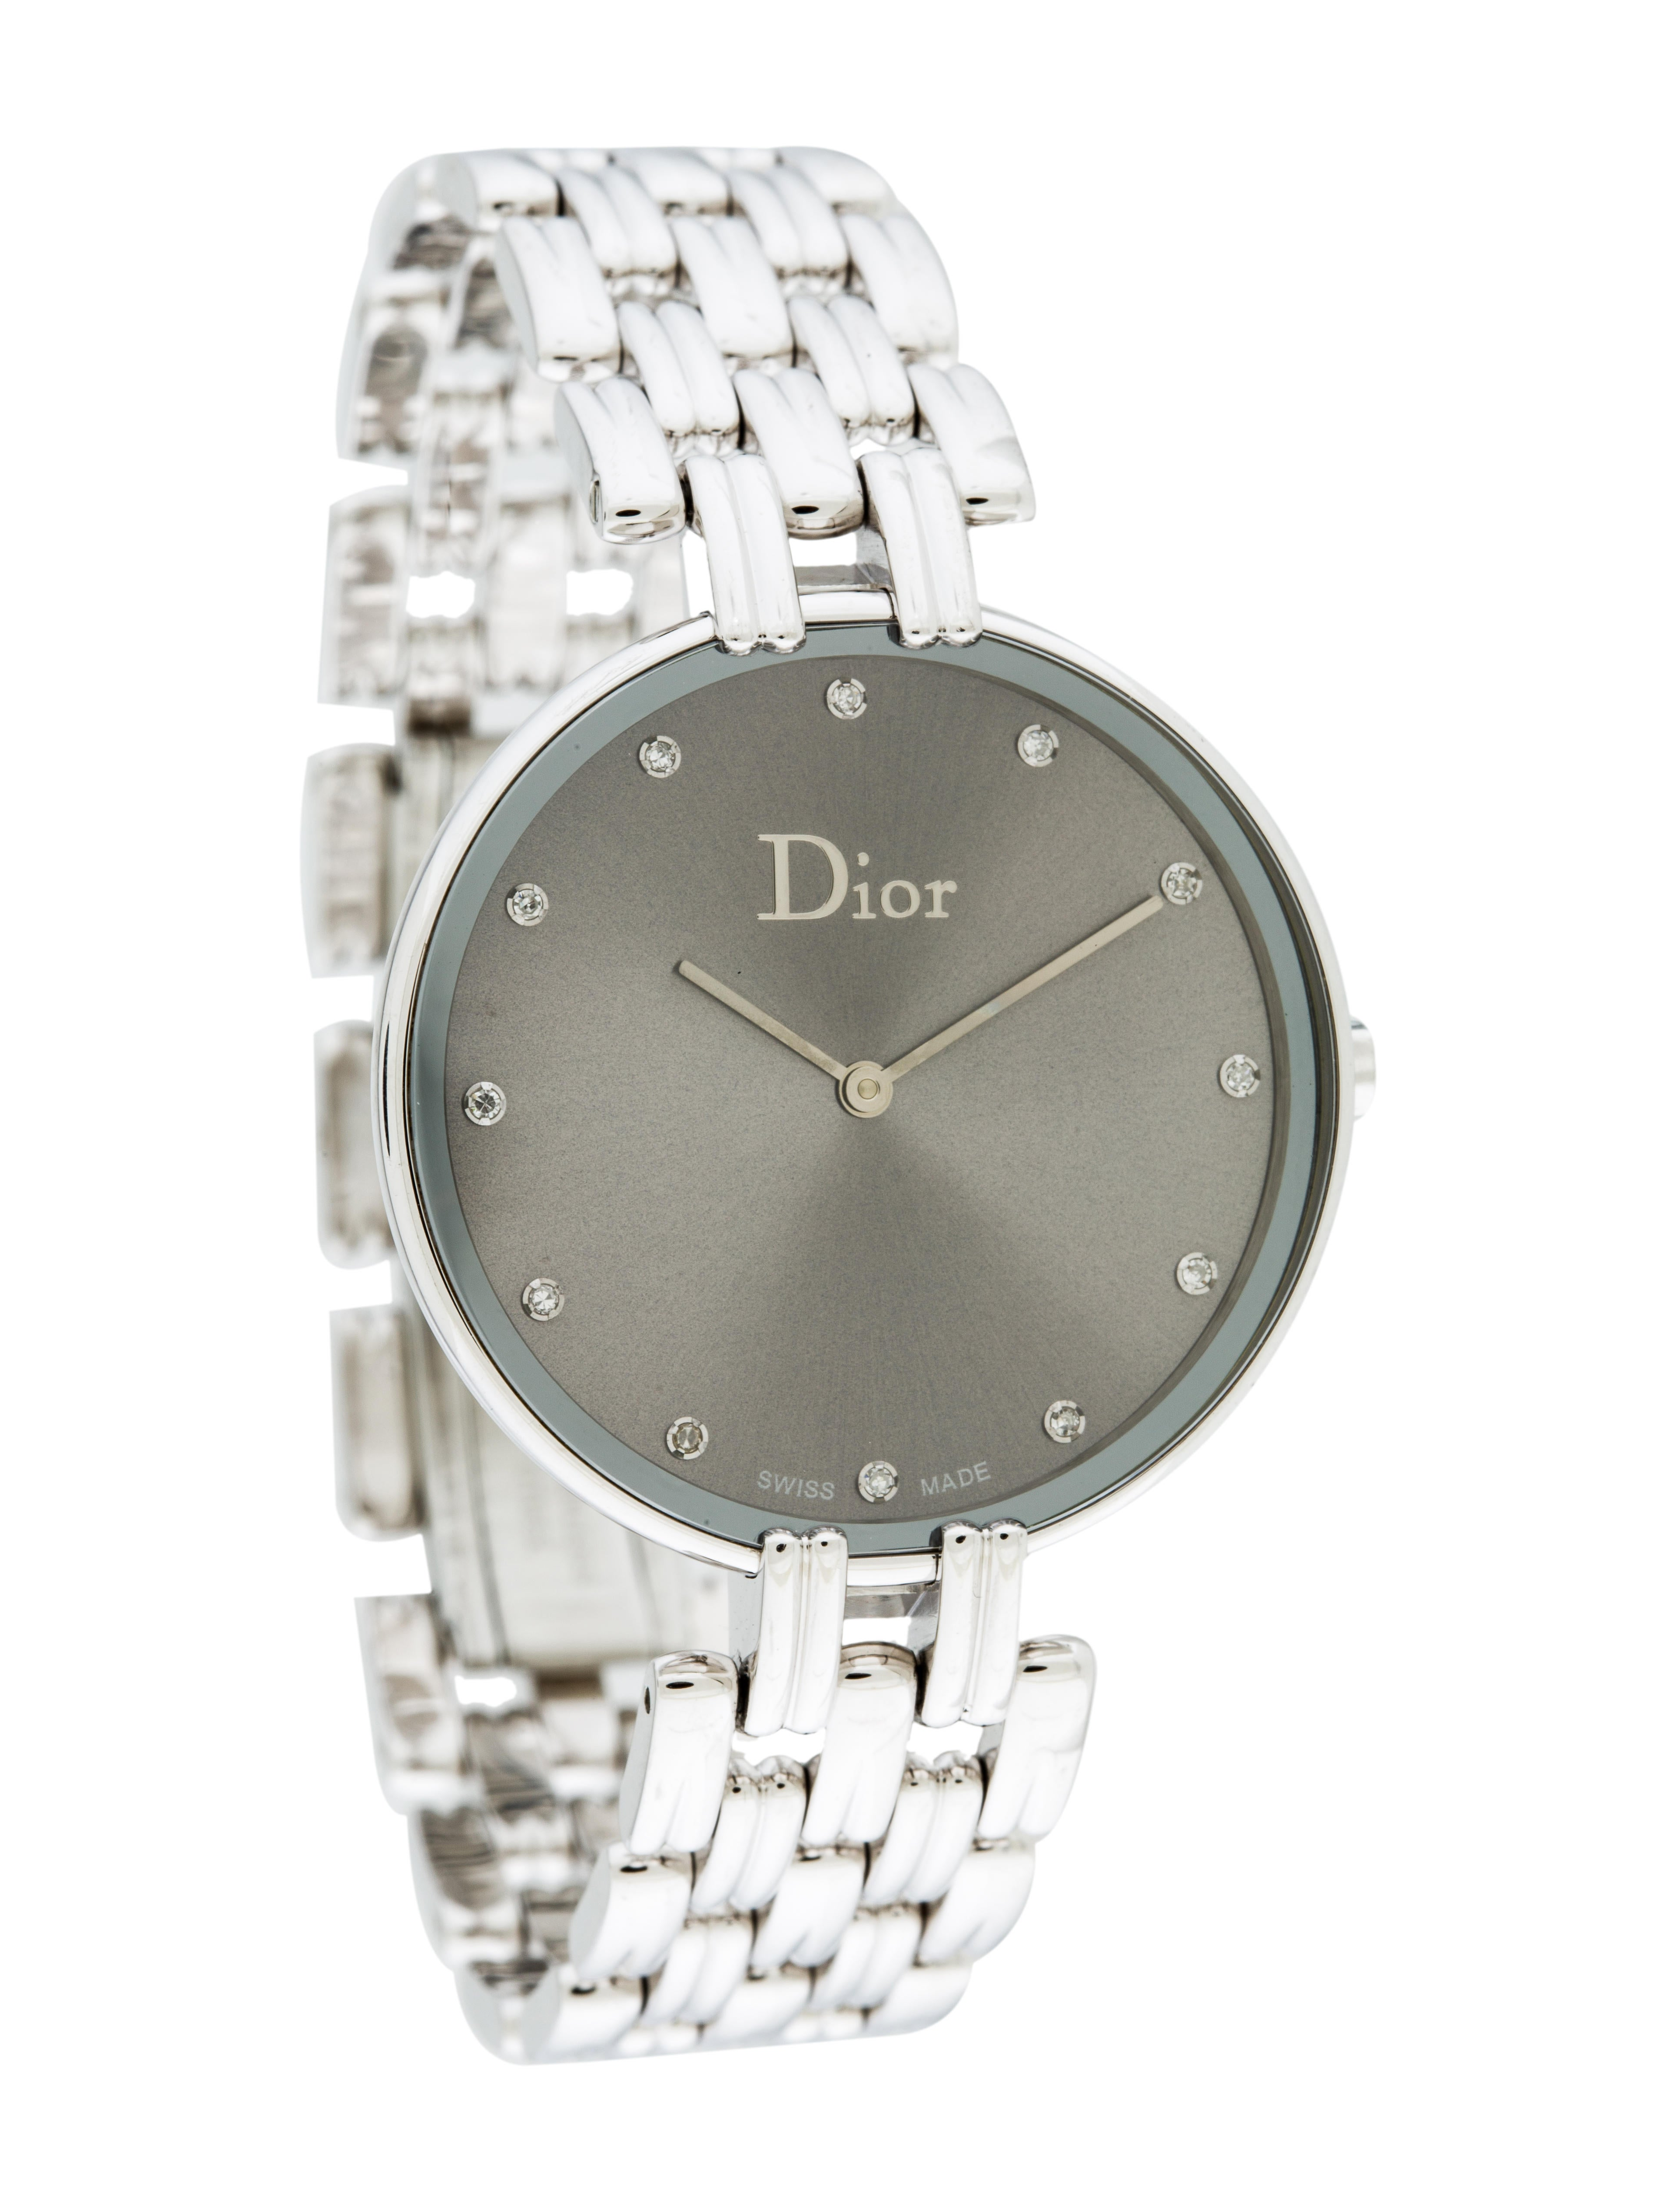 Christian dior bagheera watch bracelet chr56730 the realreal for Christian dior watches